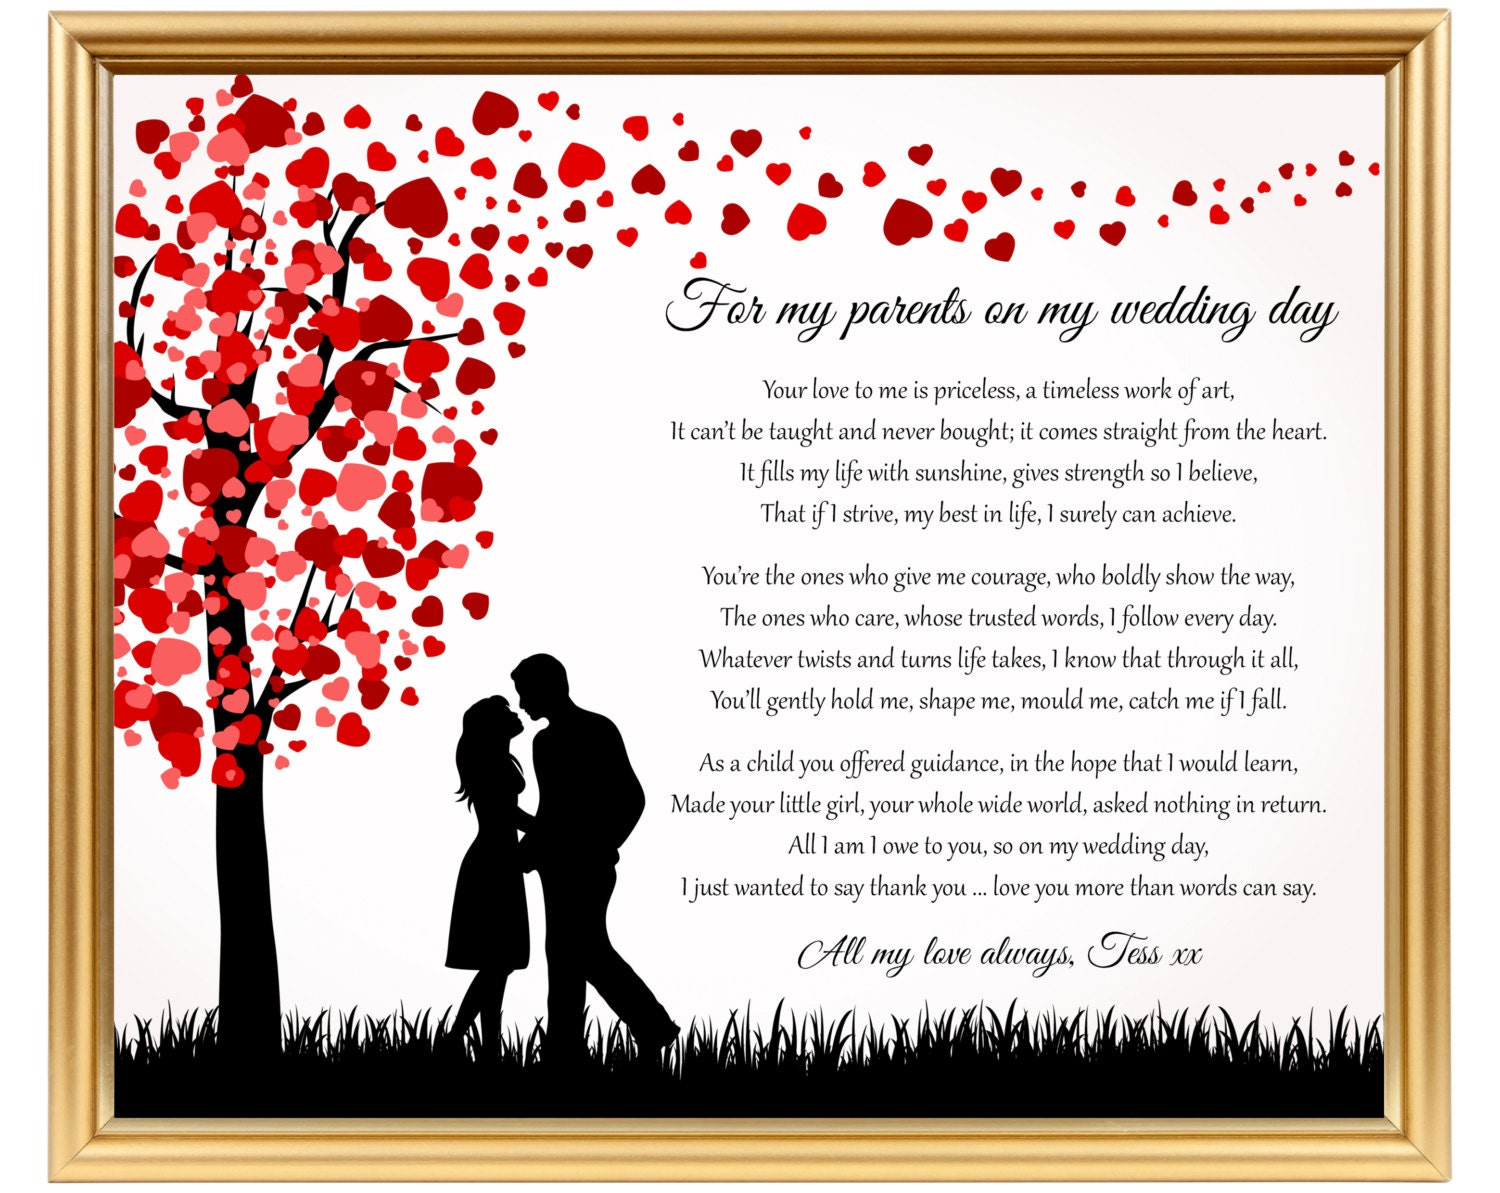 Bride Gift To Her Parents Wedding Day Poem Gift To Mom On